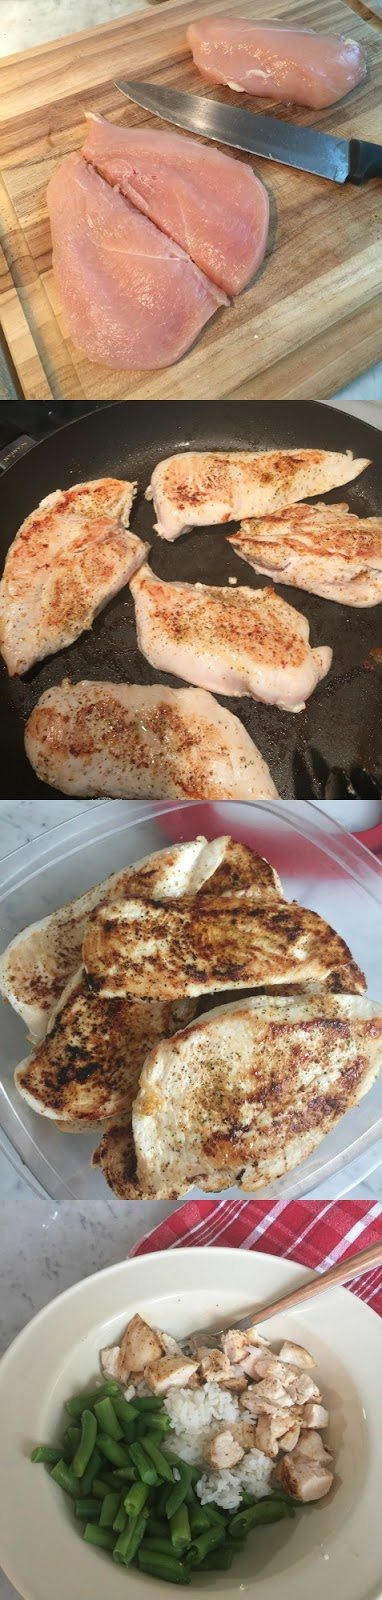 Bikini Contest Prep - Butterflied Grilled Chicken | Honey We're Home